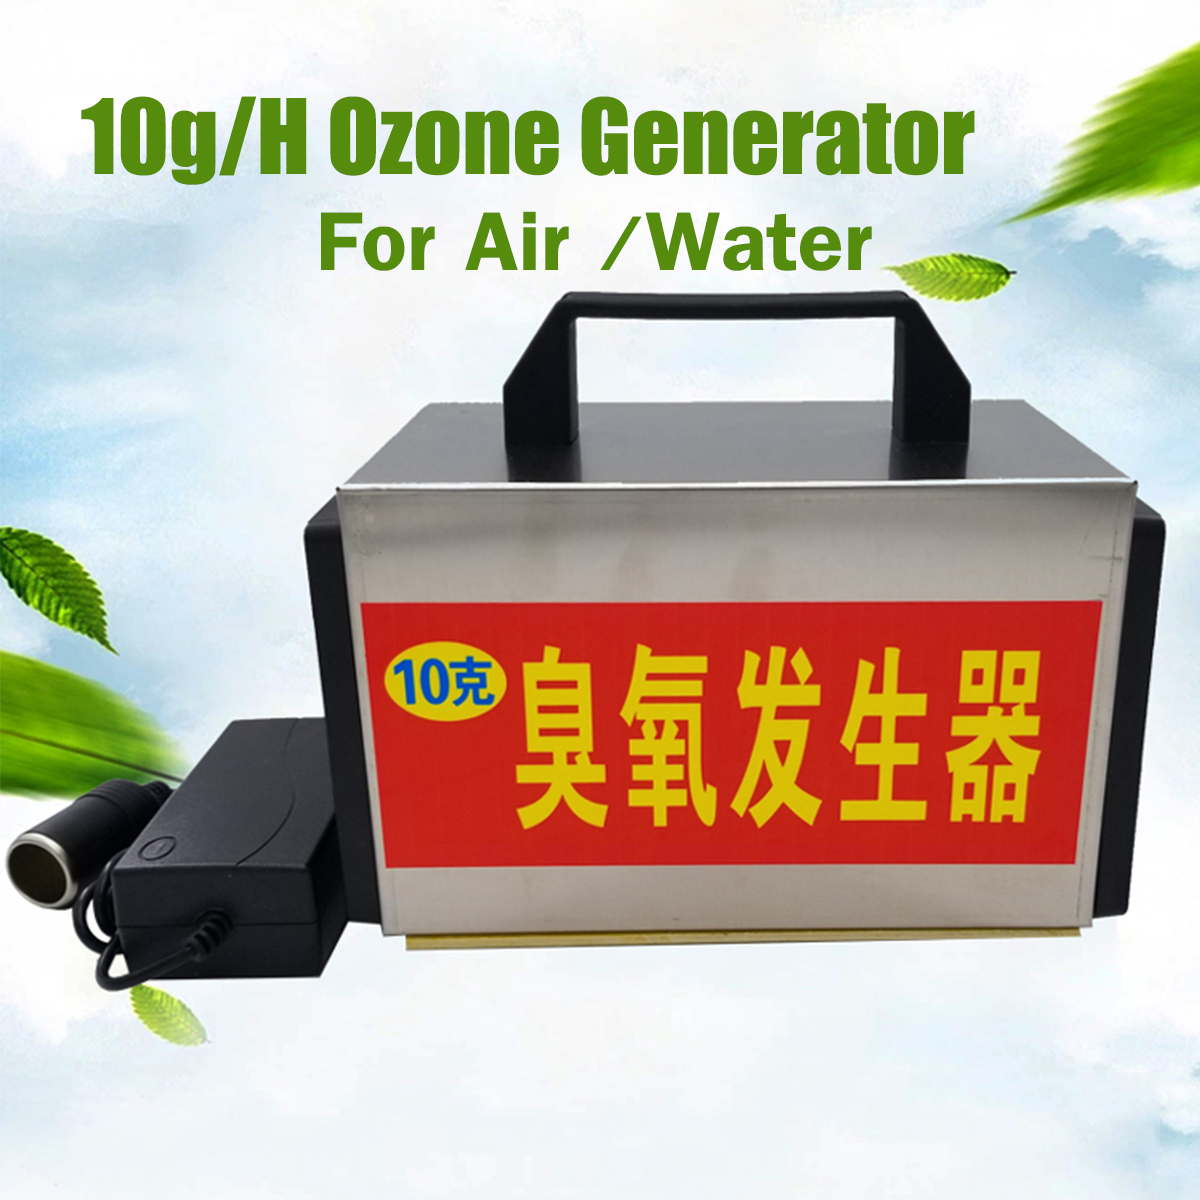 Multifunction 10G 220V/110V Water Ozone O3 Generator Ozonator Machine Air Purifier Filter Sterilizer for Water Air dc 220v 10g h ozone generator double ceramic plate water air purifier sterilizer for home car ozone generator air sterilizer